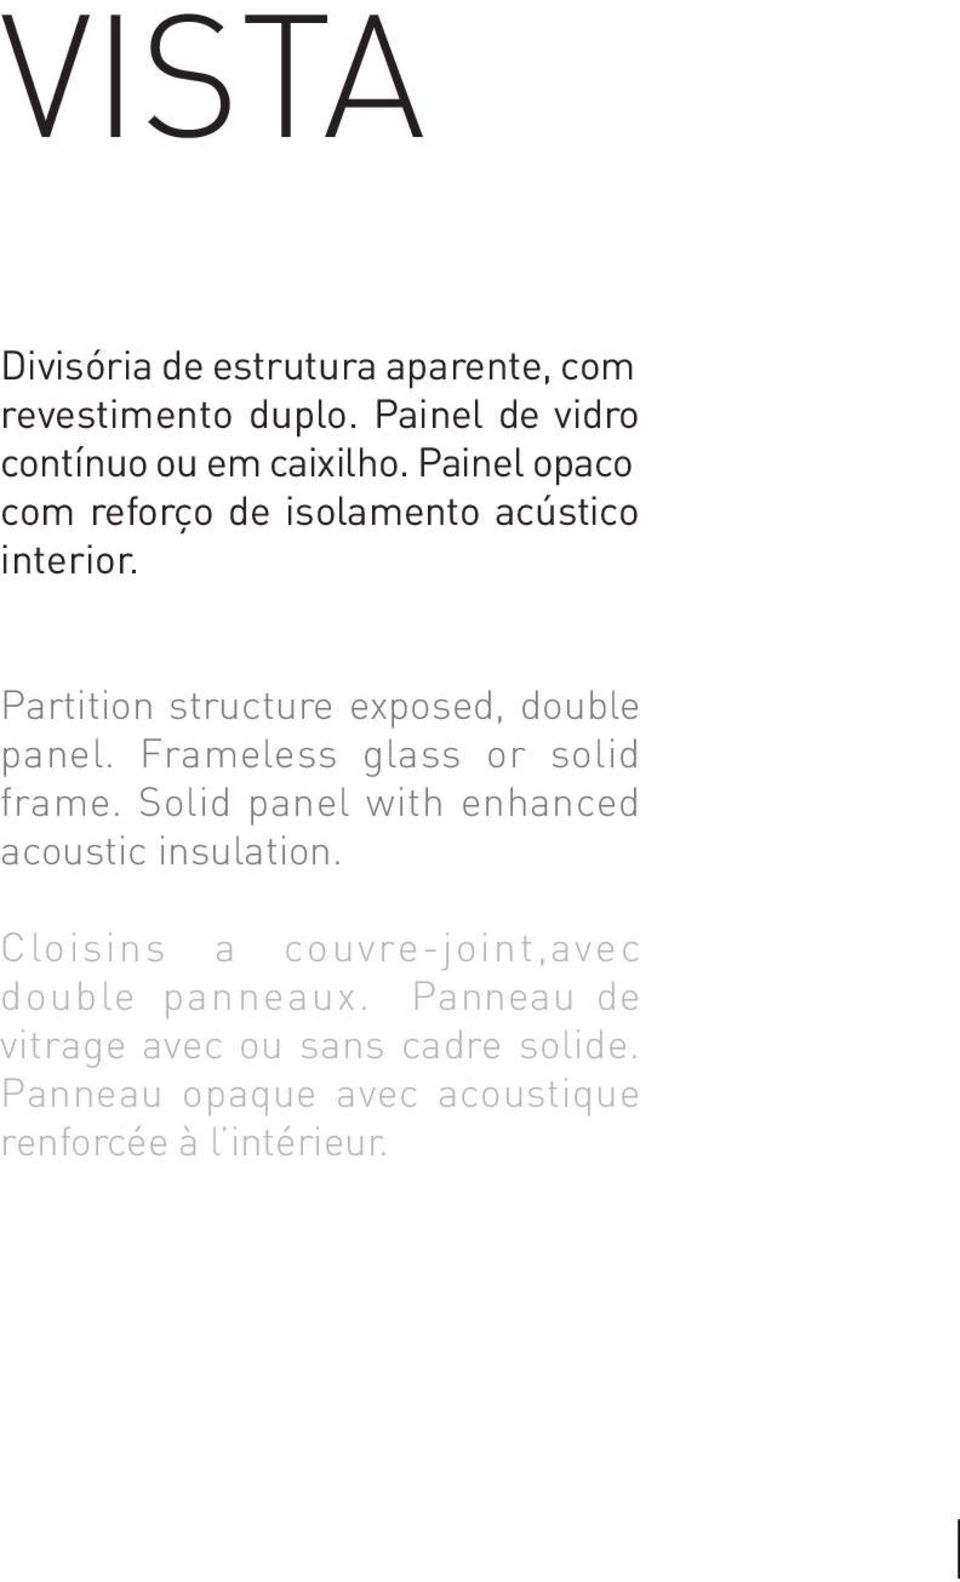 Frameless glass or solid frame. Solid panel with enhanced acoustic insulation.